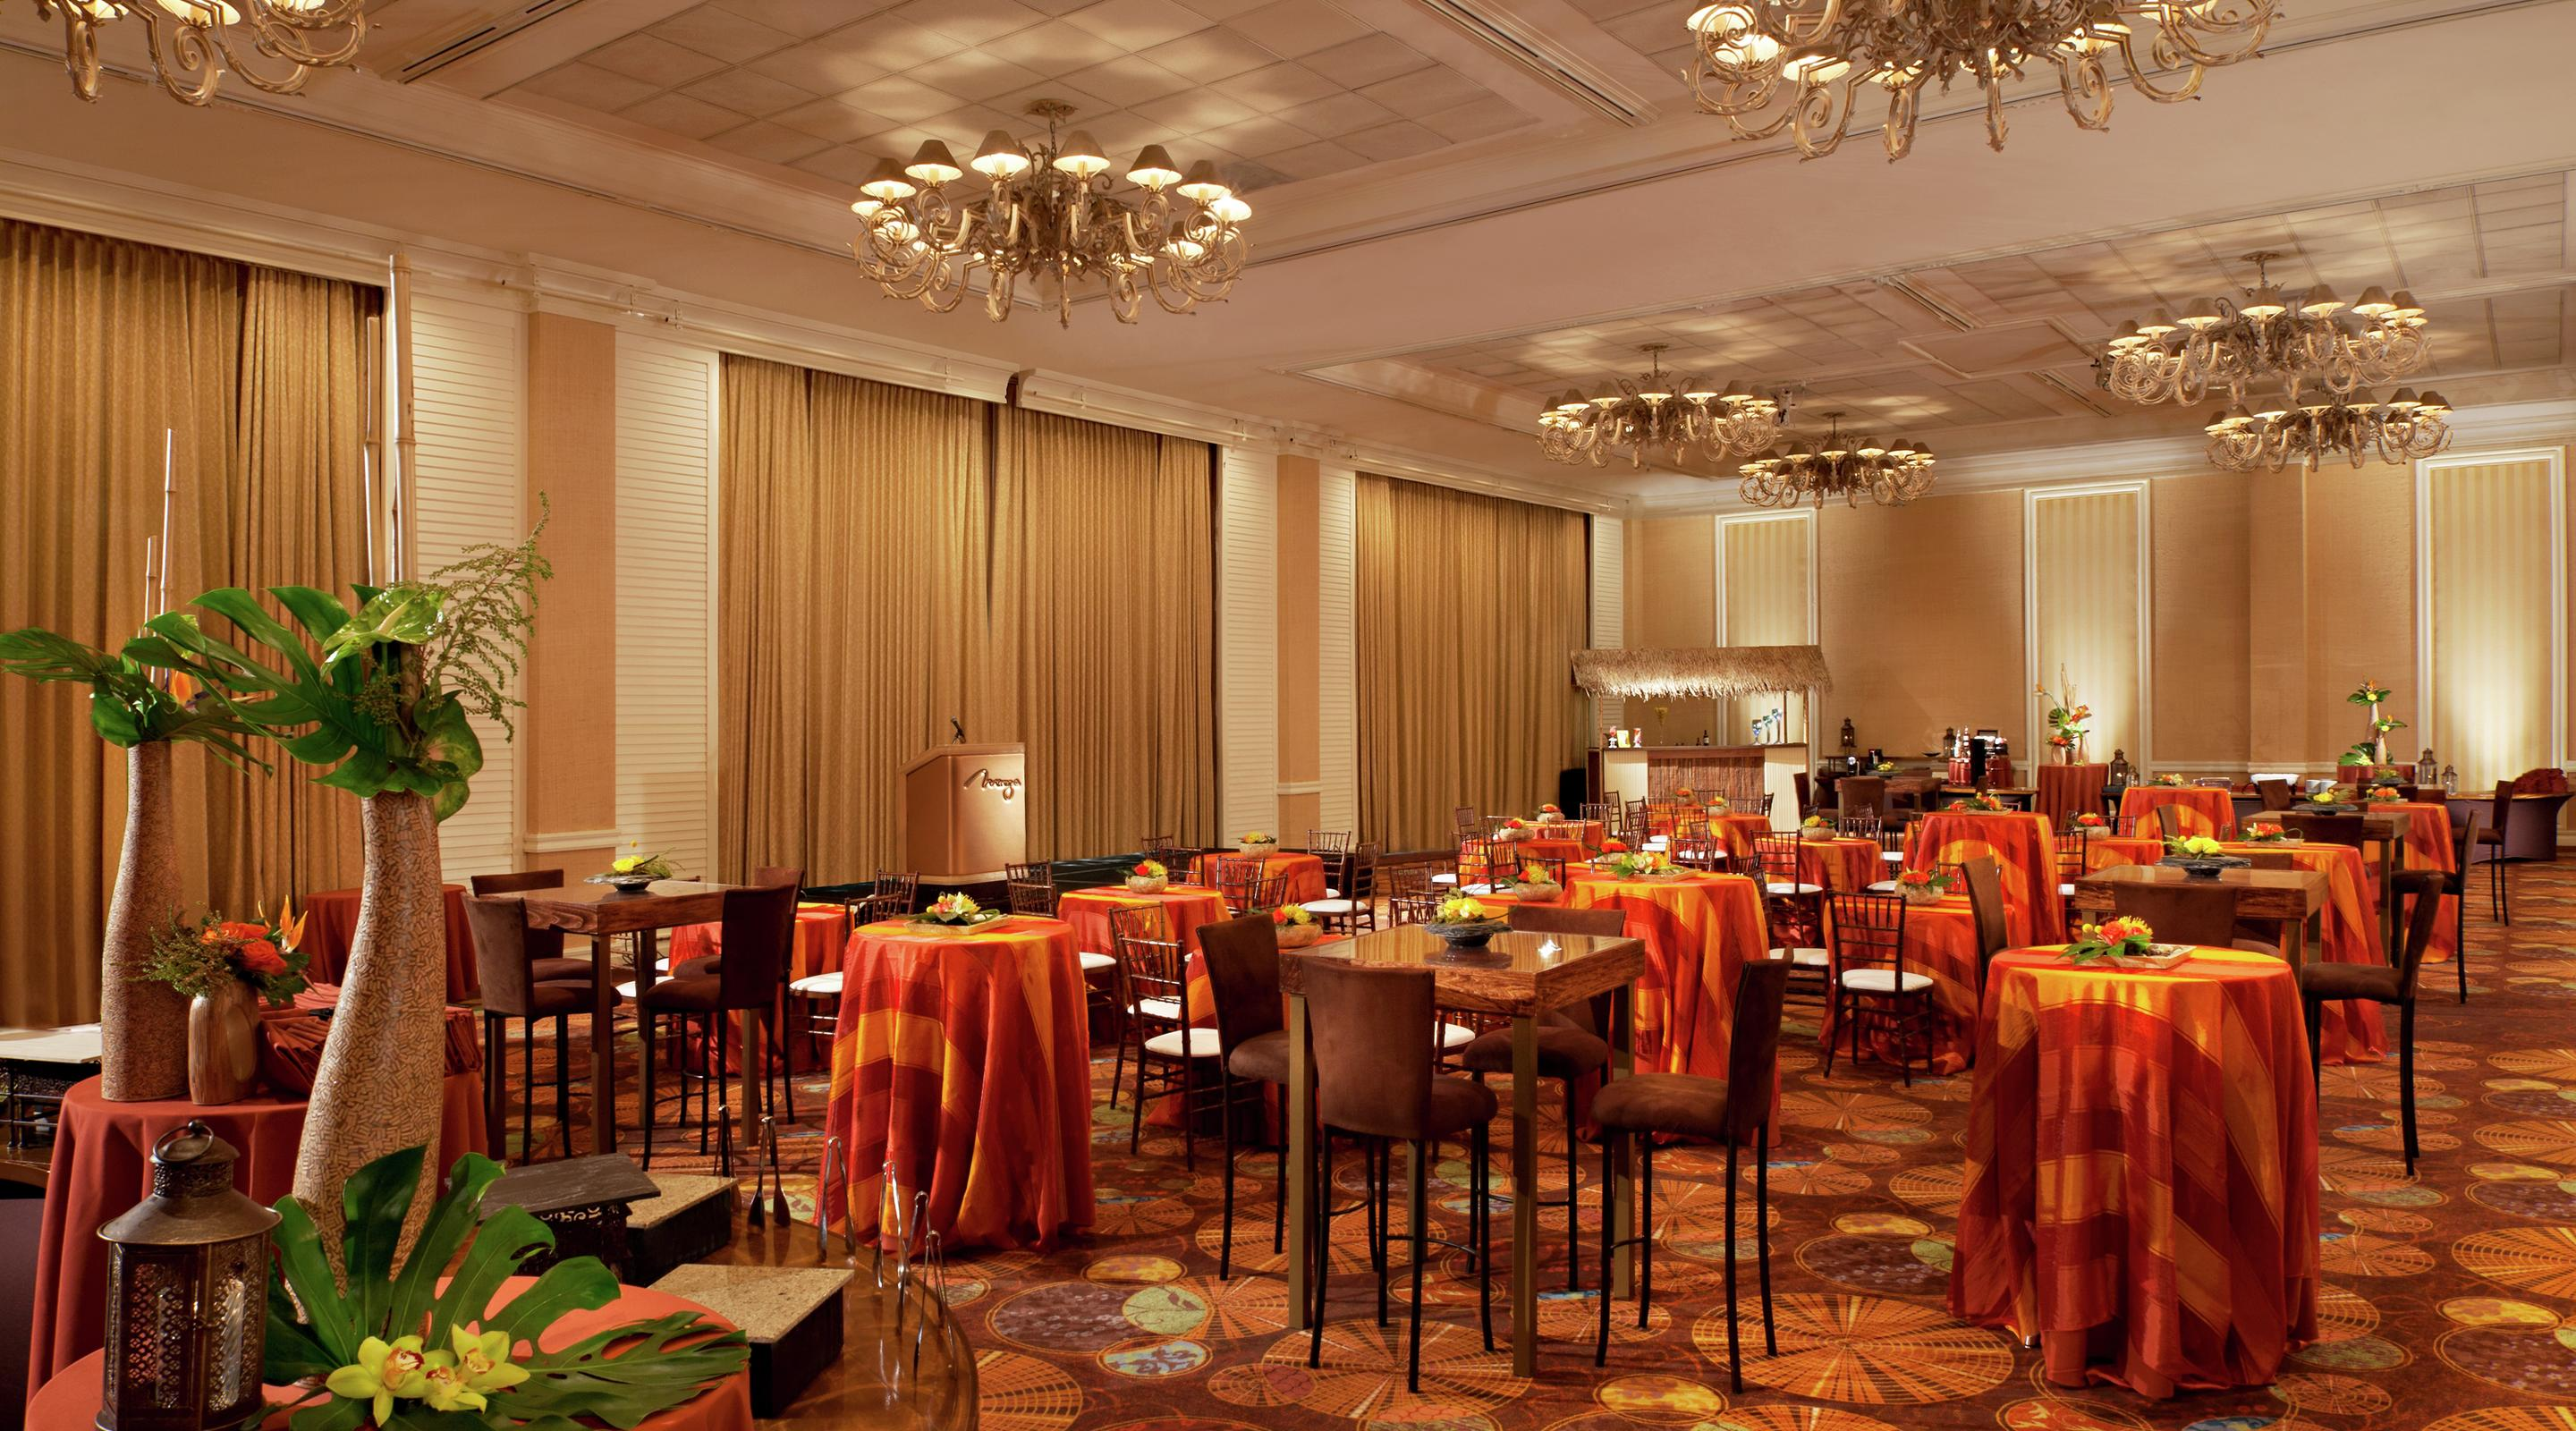 Why Meet at The Mirage - The Mirage